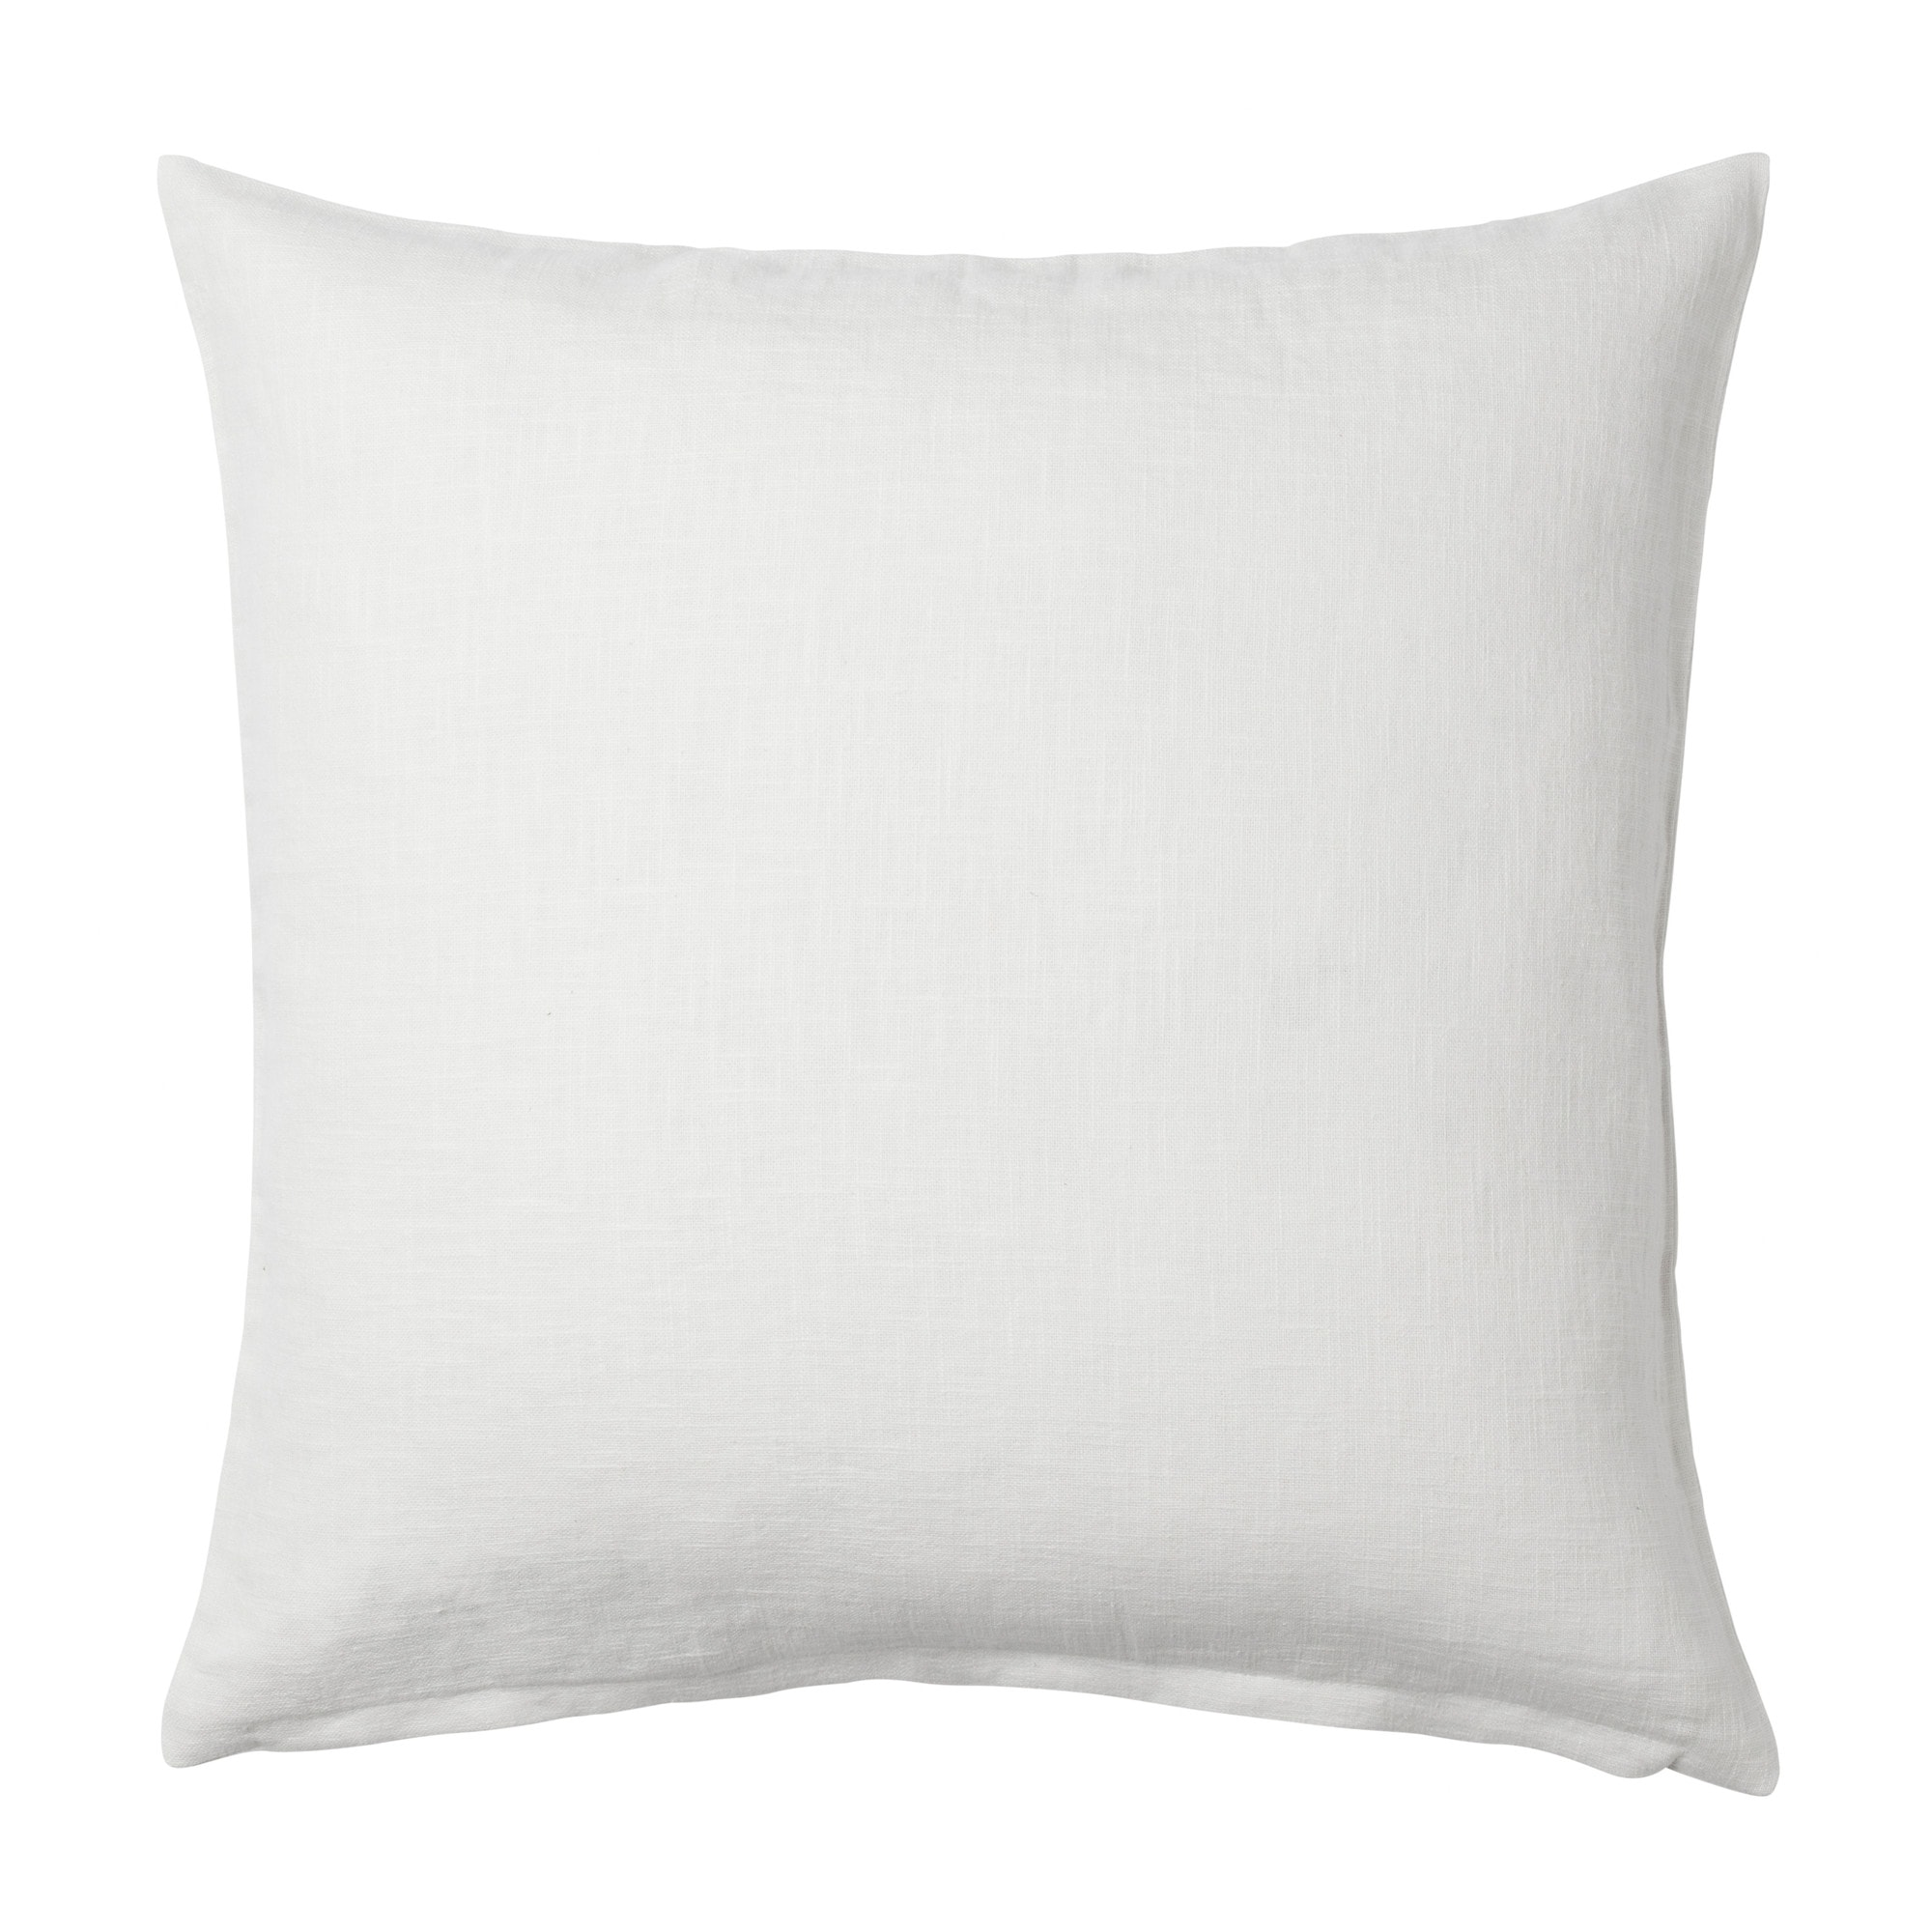 Decorative Throw Pillows – Cushions & Cushion Covers IKEA